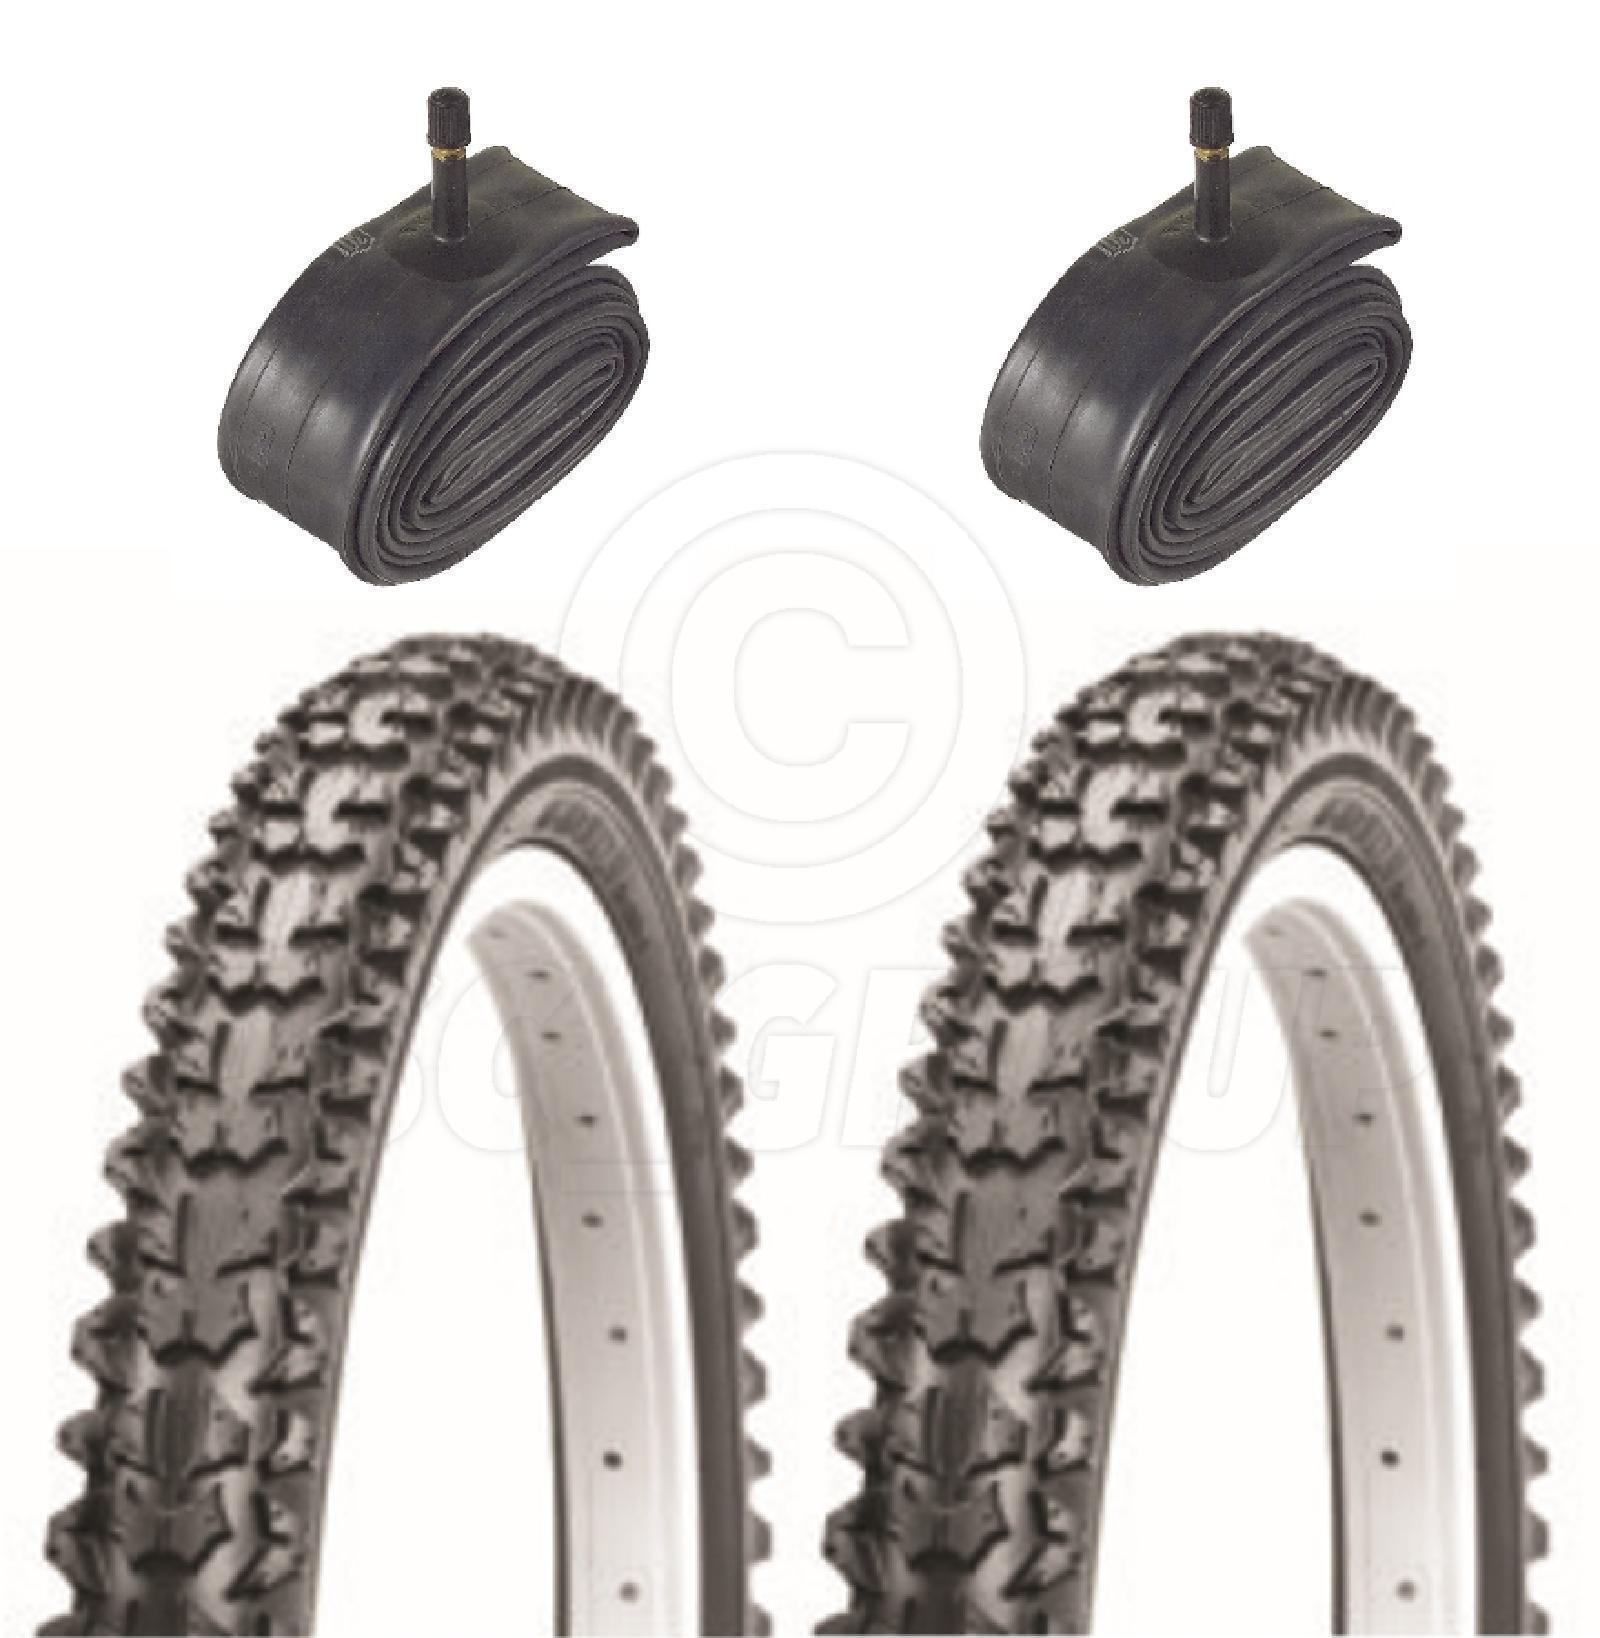 2 Bicycle Tyres Bike Tires - Mountain Bike - 26 x 2.125 - With Schrader Tubes